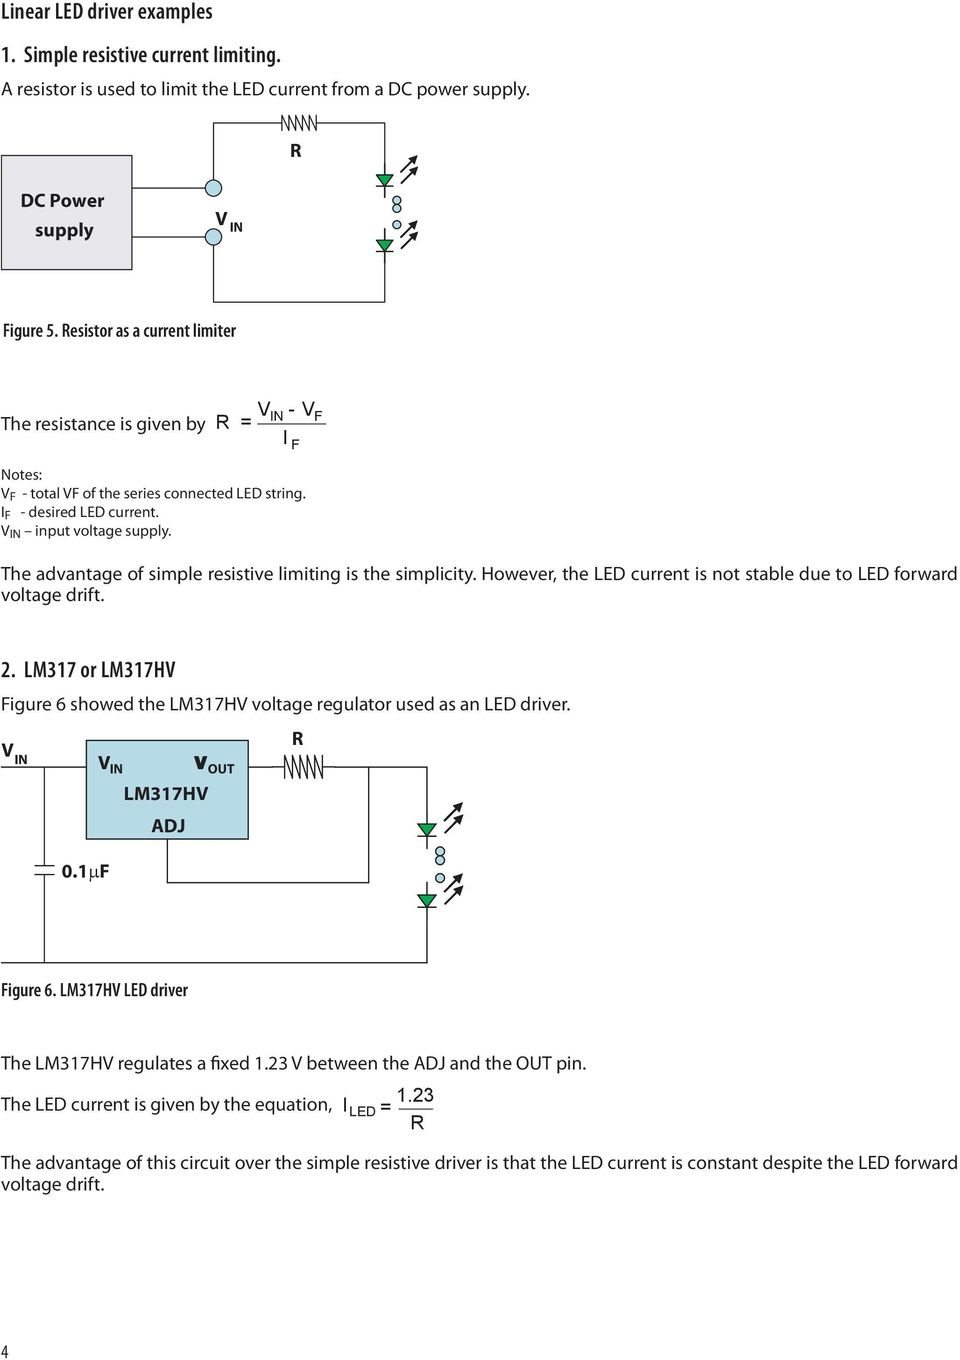 Application Note Pdf Understanding This Lm317 Led Driver Circuit Electrical Engineering F The Advantage Of Simple Resistive Limiting Is Simplicity However Current